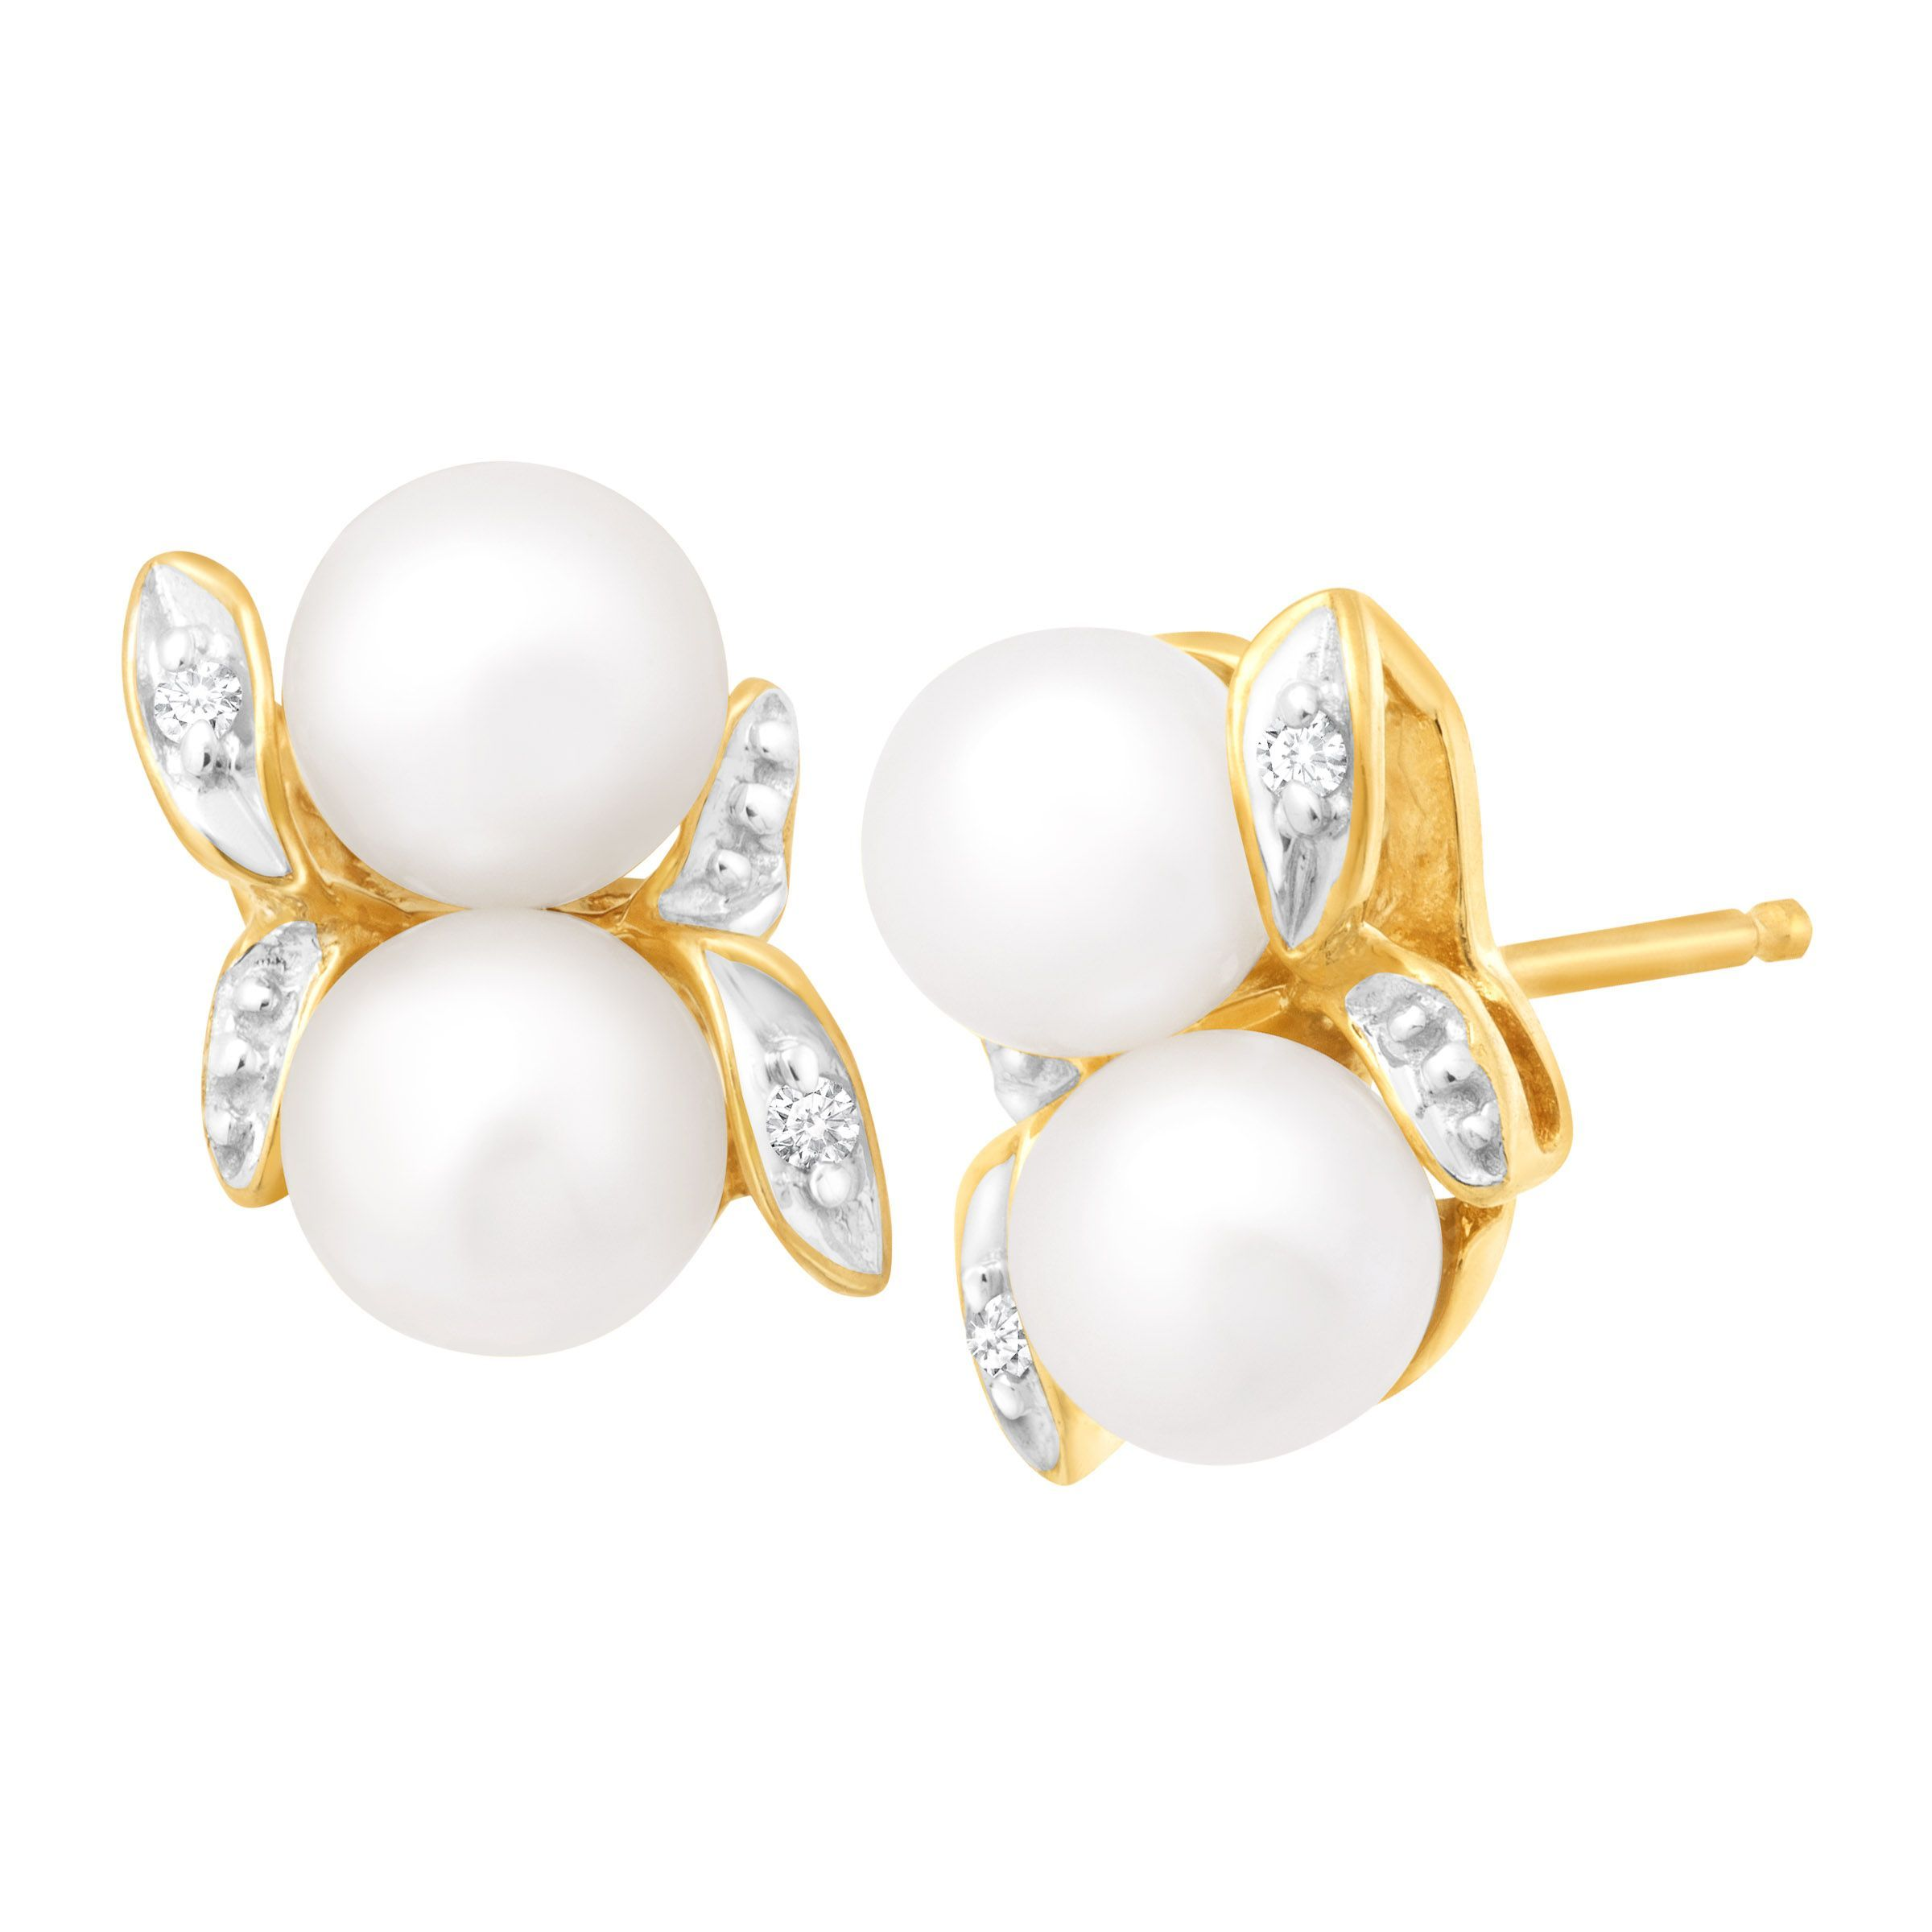 e7afbb52f Freshwater Pearl Bud Stud Earrings with Diamonds in 10K Gold ...